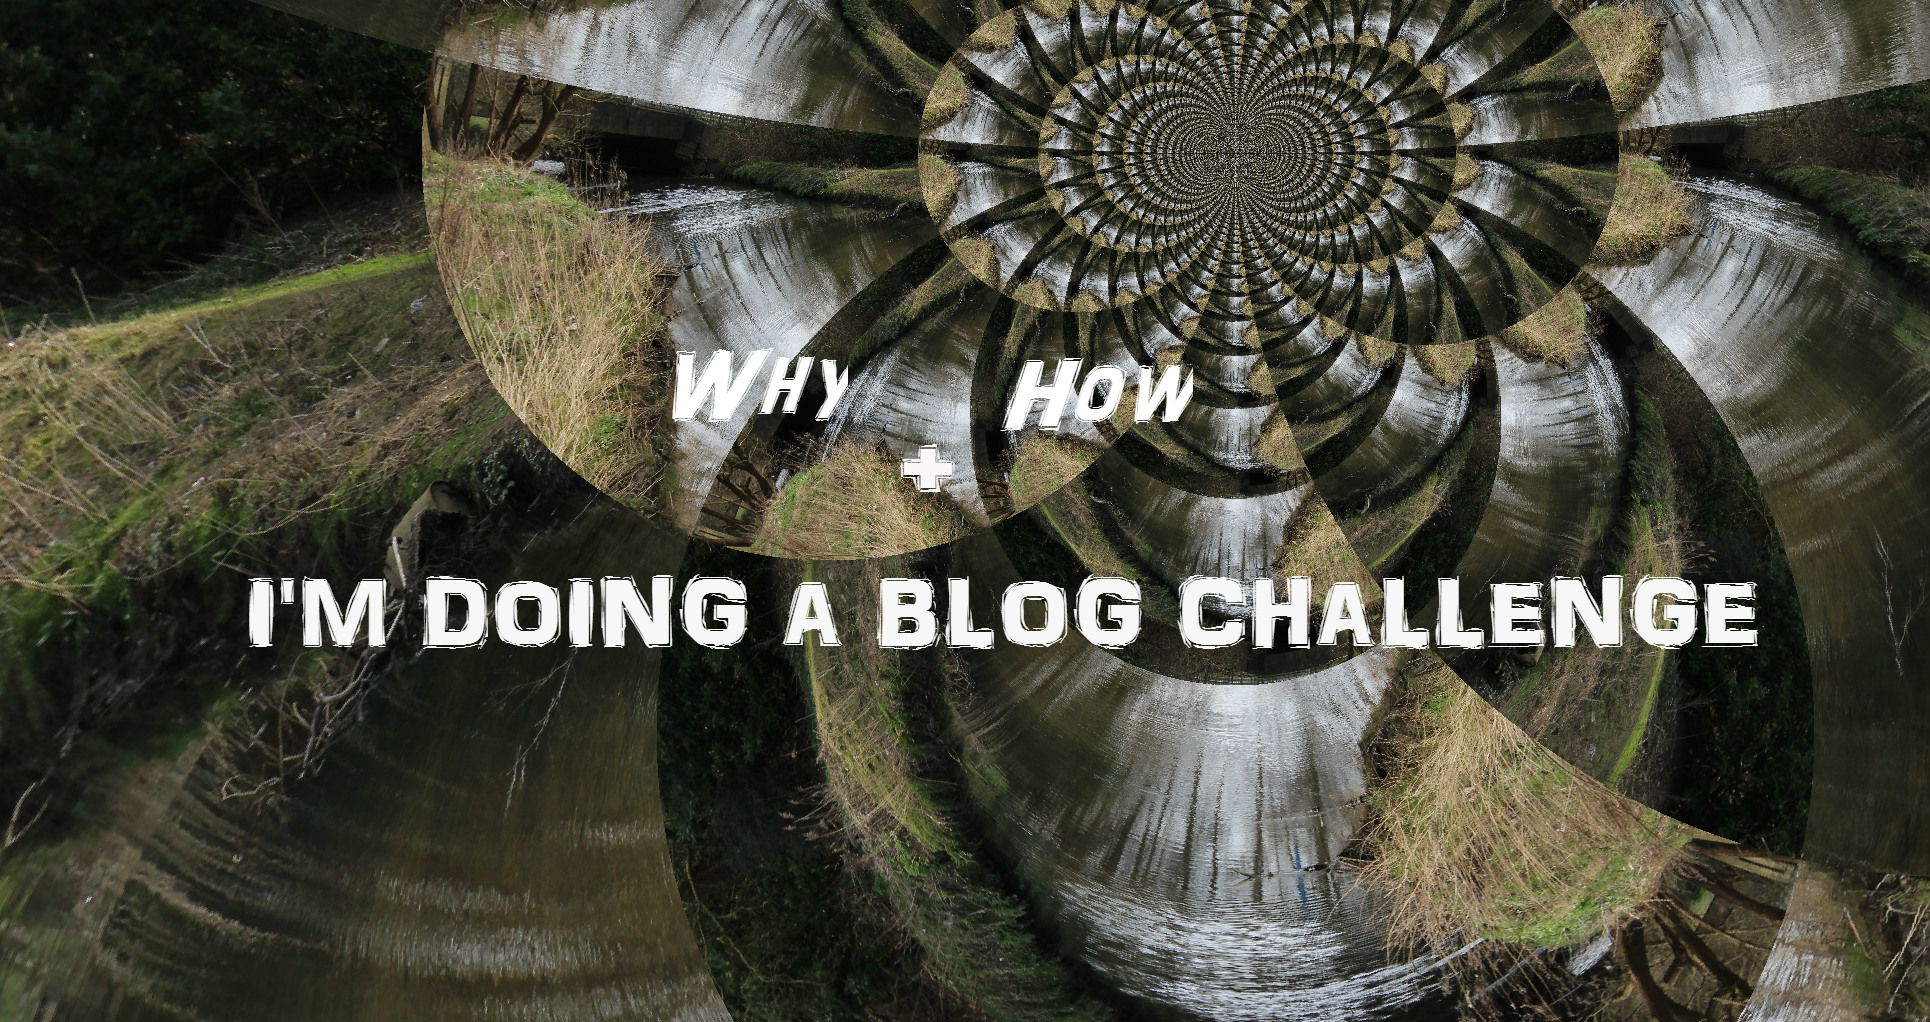 Why and how I'm doing a blog challenge this week